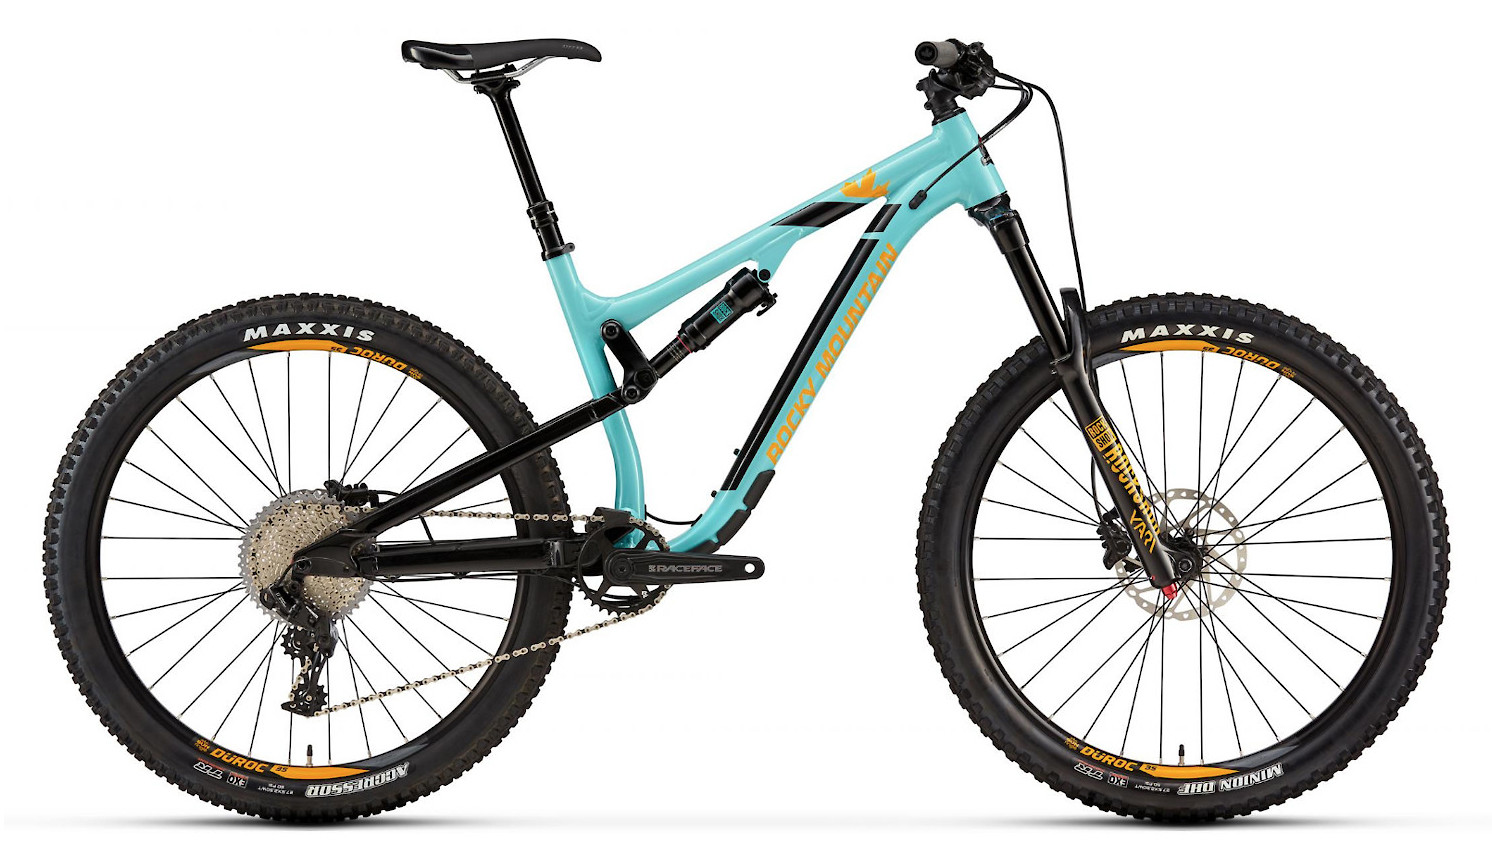 2019 Rocky Mountain Altitude Alloy 30 - Light blue and yellow